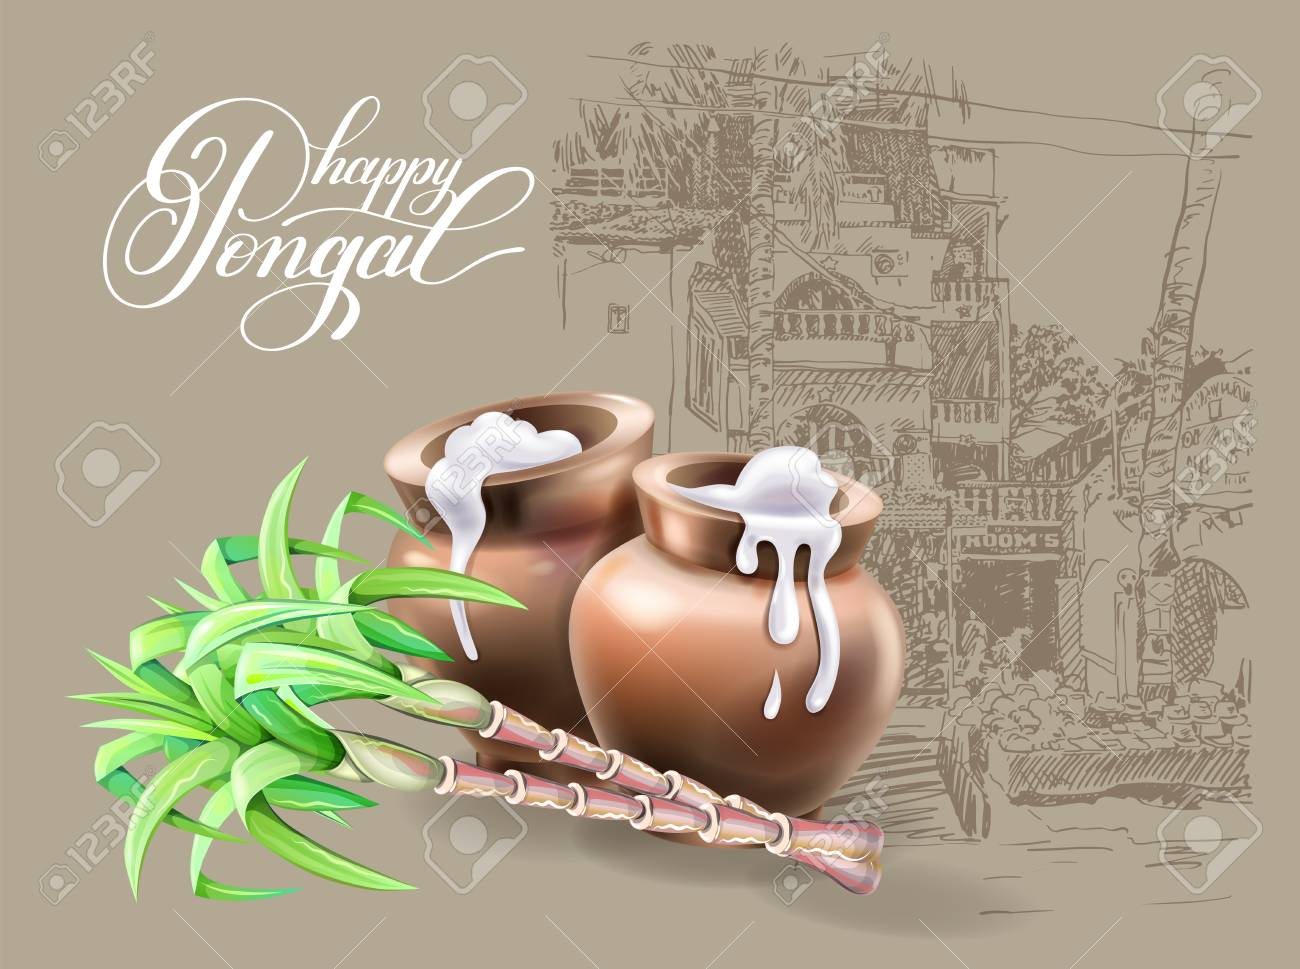 Happy pongal greeting card to south indian harvest festival design happy pongal greeting card to south indian harvest festival design vector illustration stock vector m4hsunfo